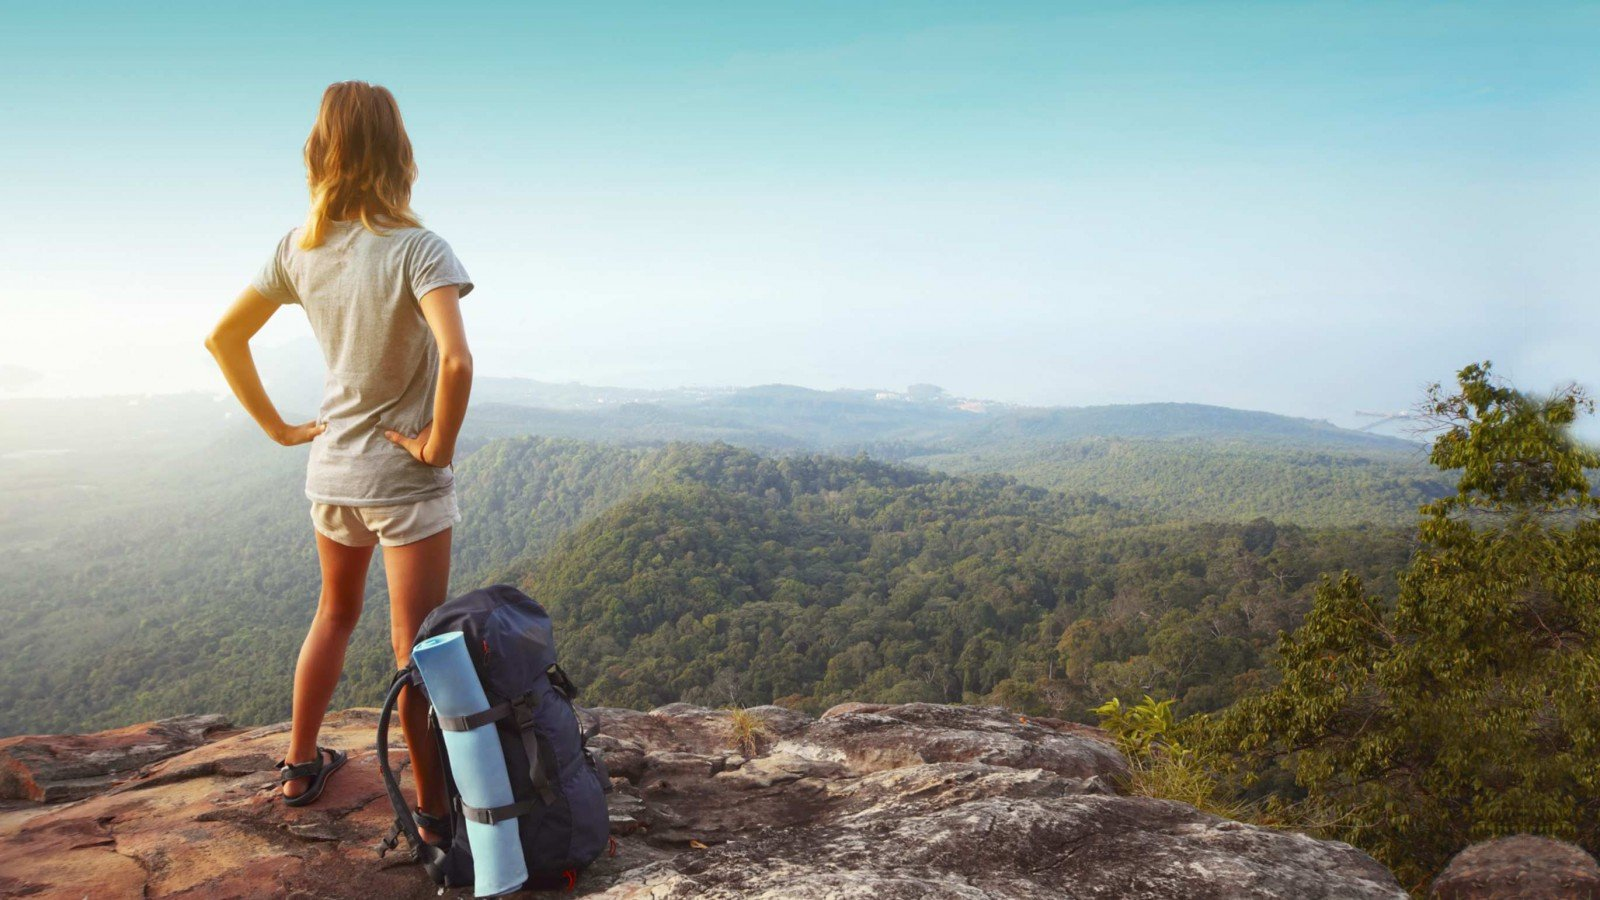 Most useful travel hints and tips collected for all travelers